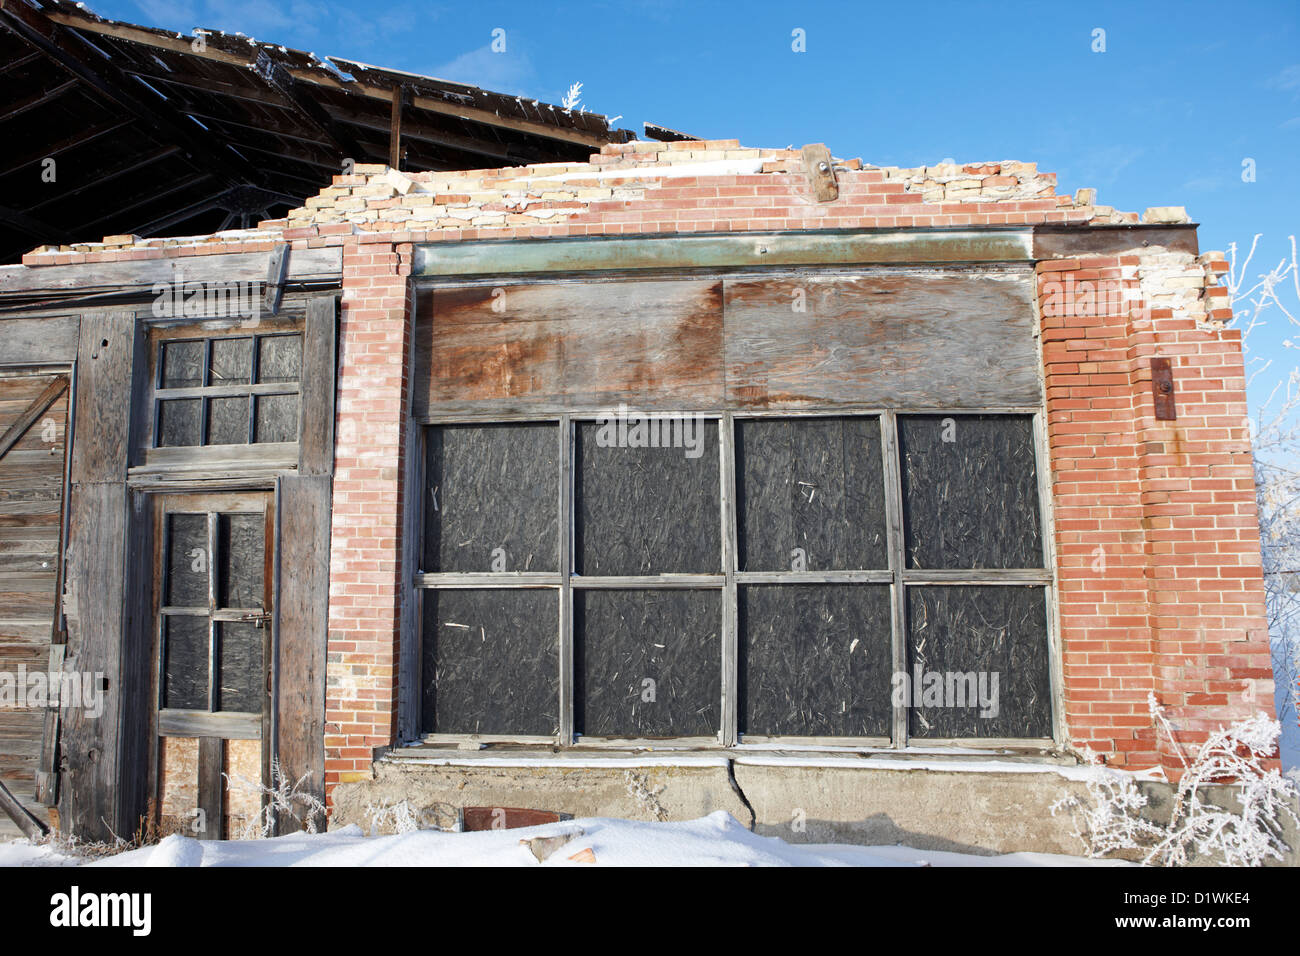 old traditional brick and wood building in disrepair Forget Saskatchewan Canada - Stock Image